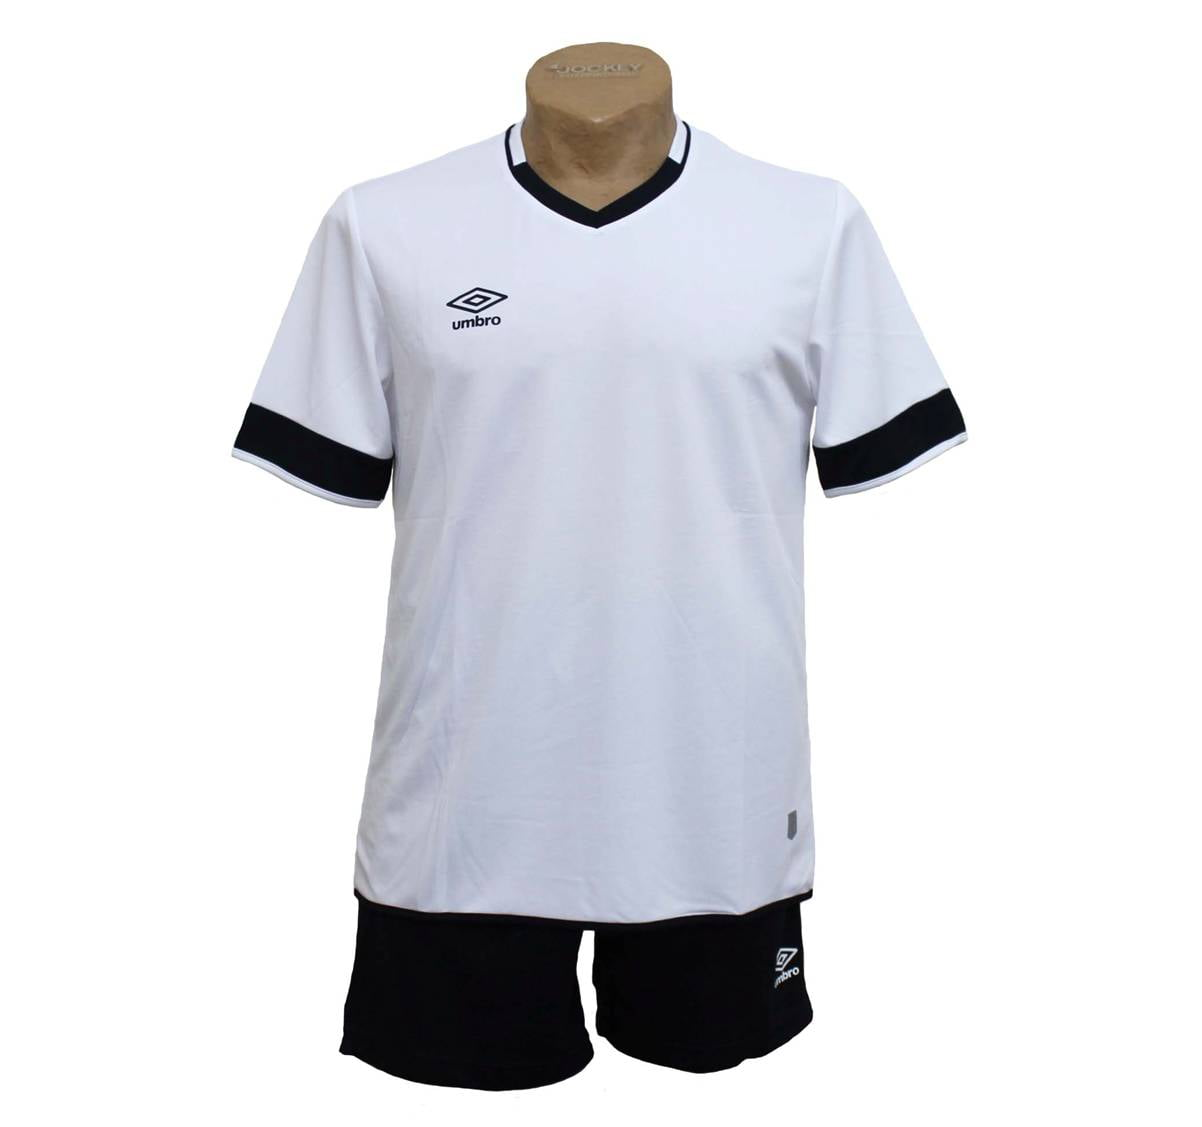 6a69ee6b9548 Umbro Football Kit  White Black (5171001)